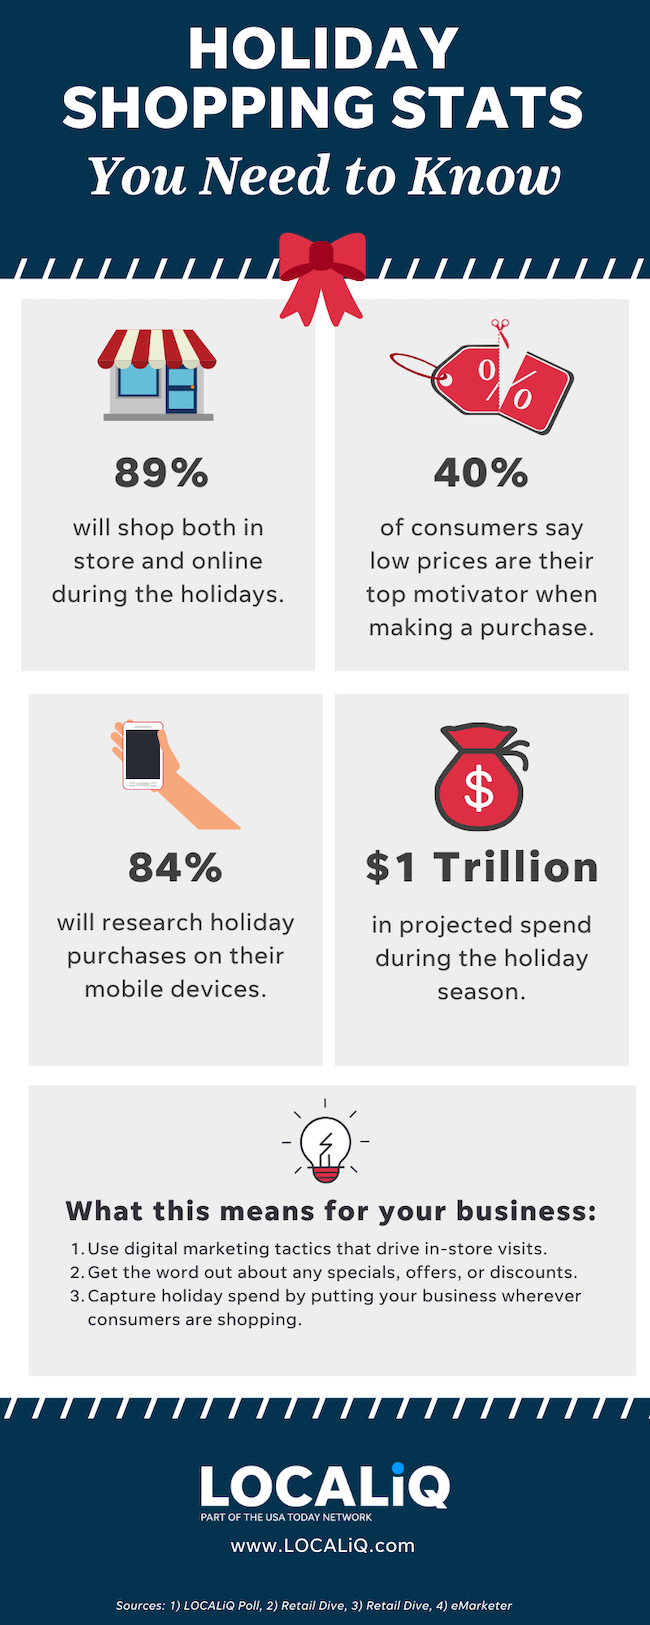 LOCALiQ Infographic - Holiday Shopping Stats